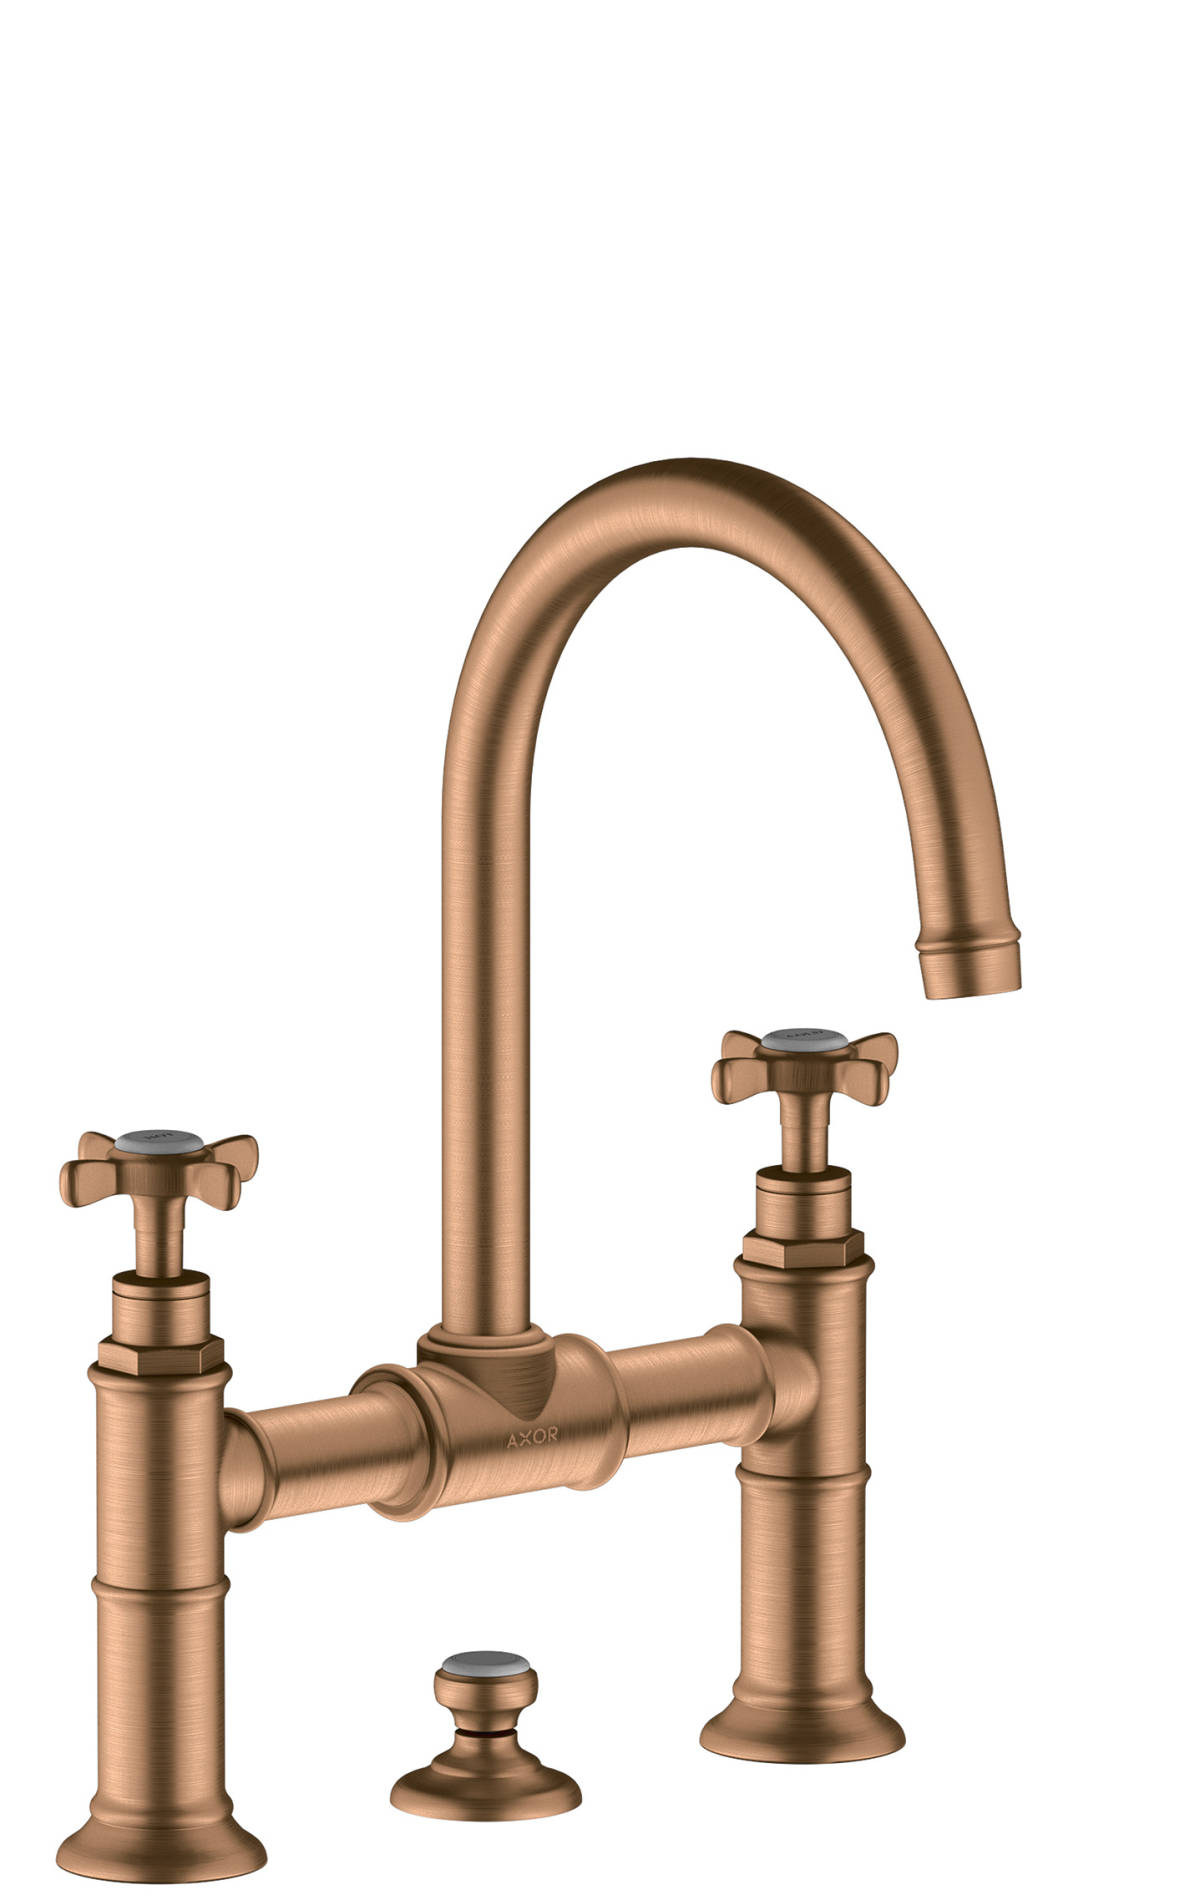 2-handle basin mixer 220 with cross handles and pop-up waste set, Brushed Bronze, 16510140